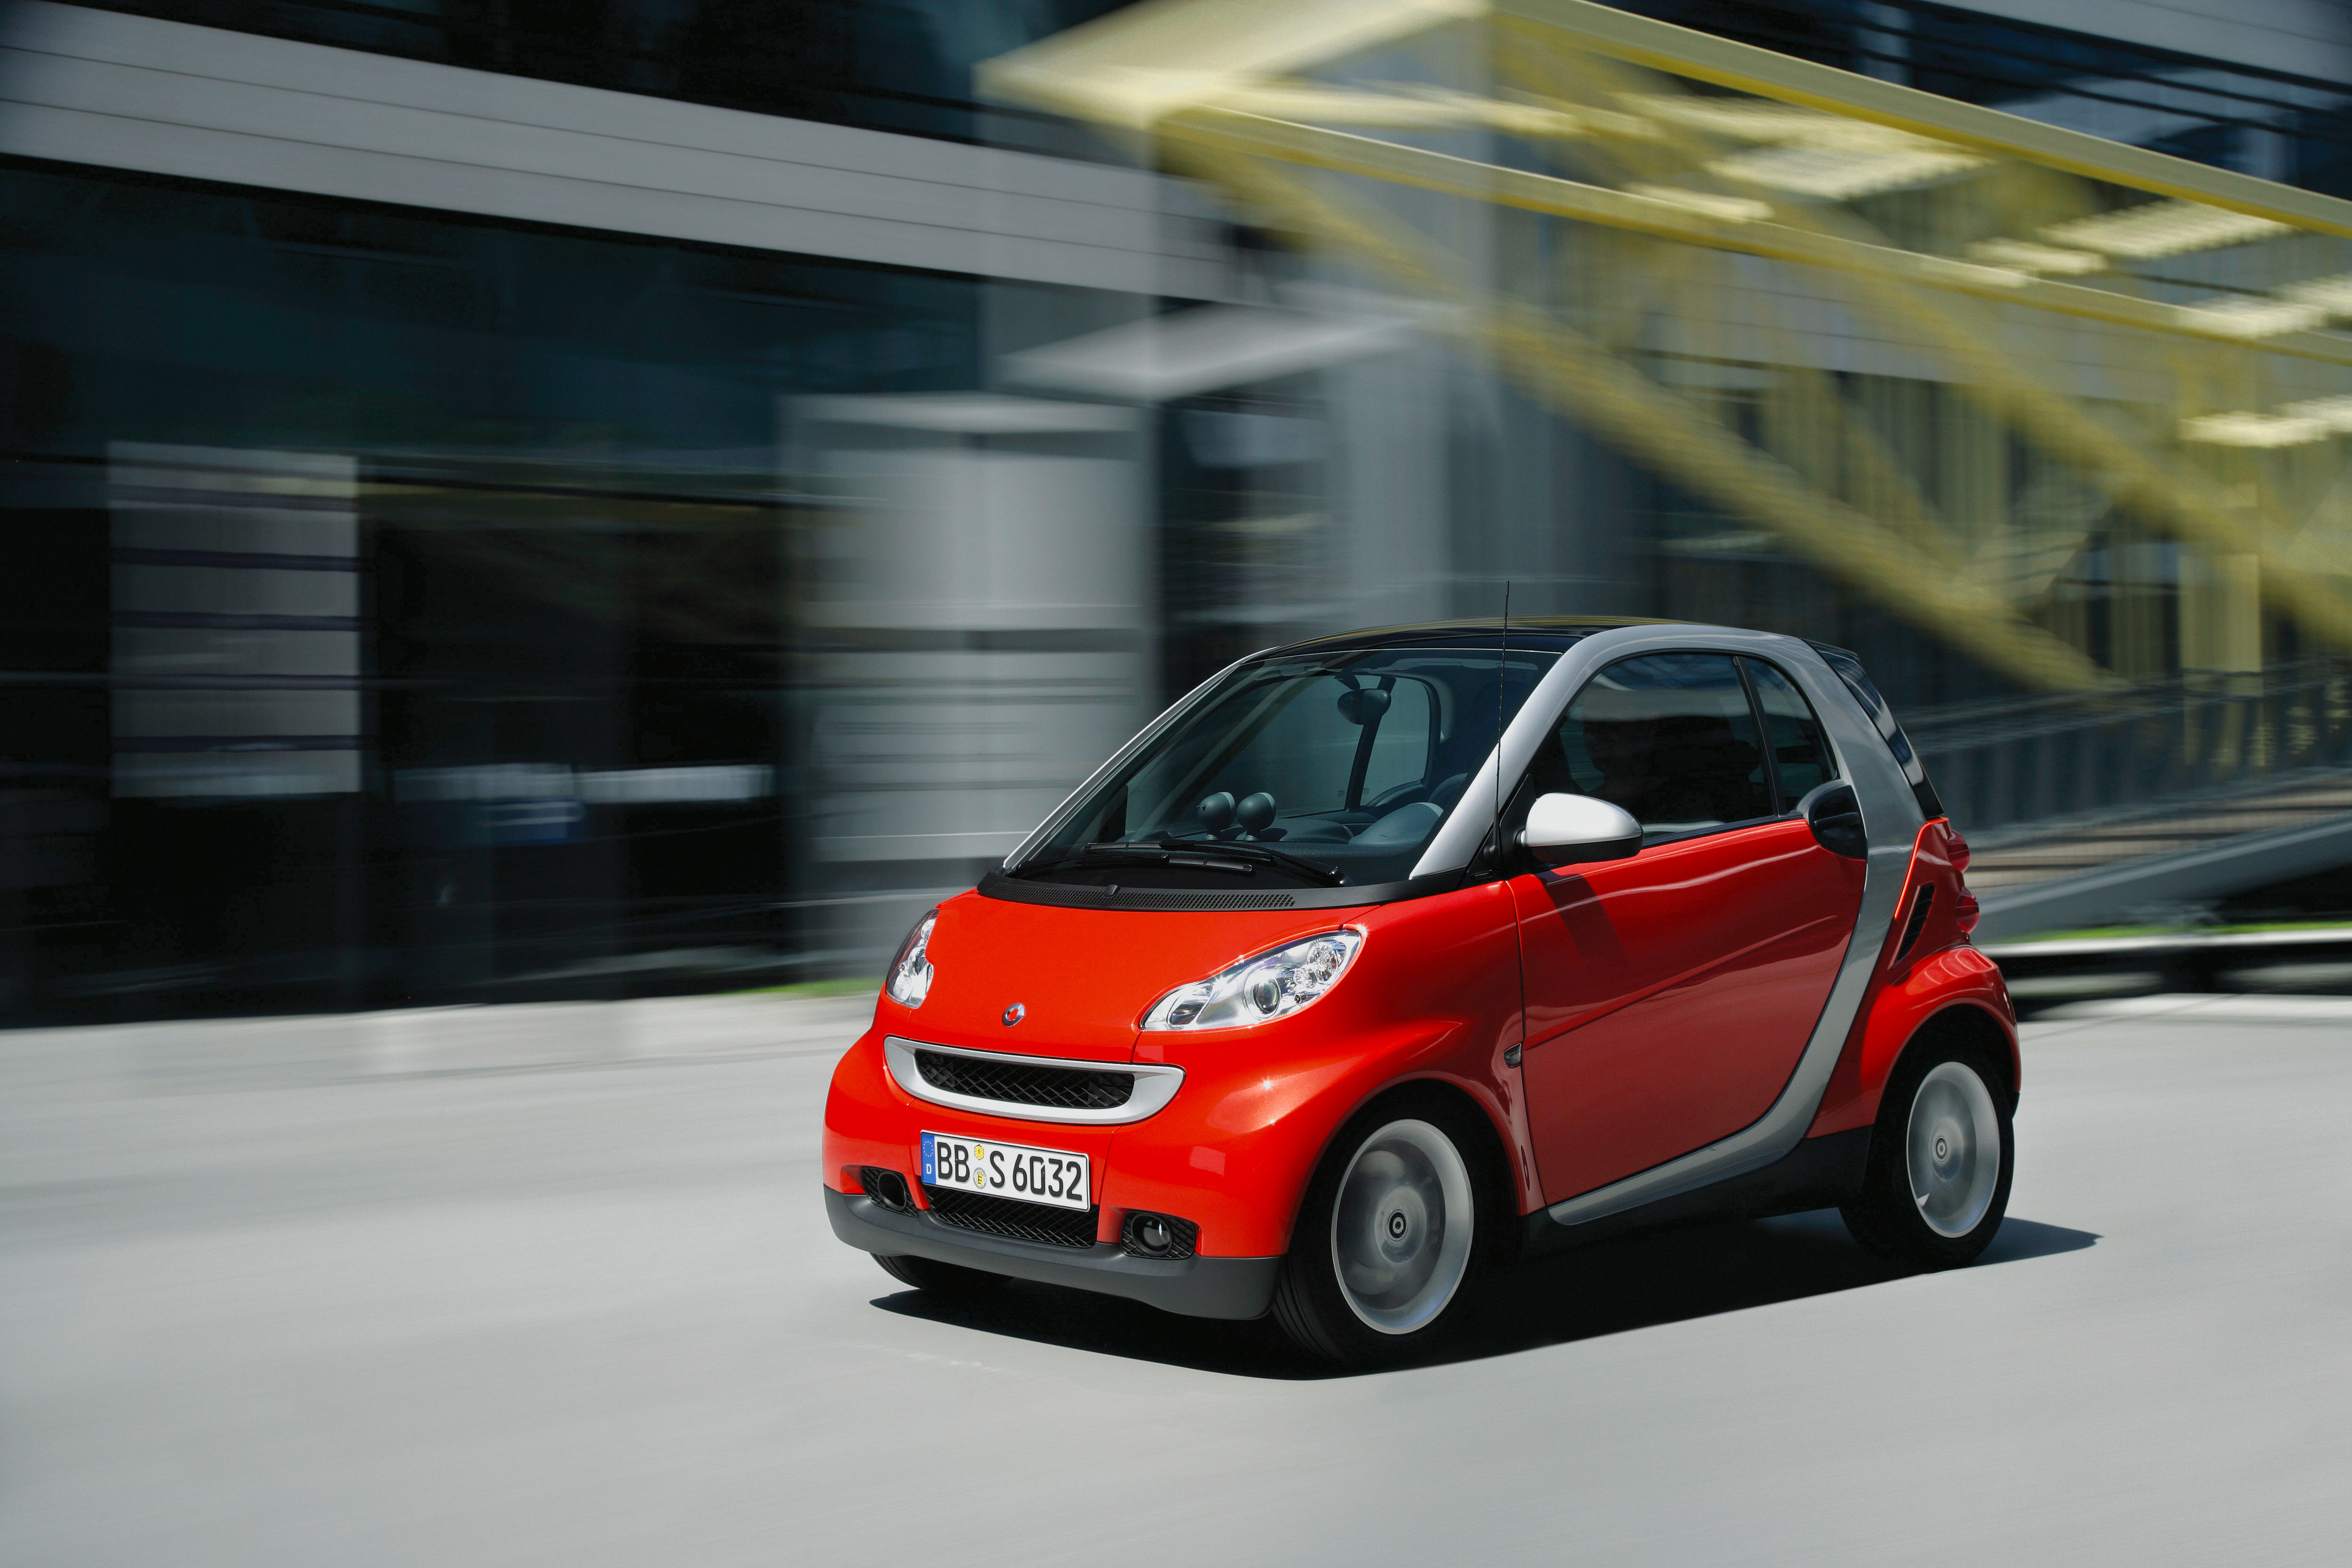 Is The Smart Car As It Turns 20 Years Of Age A Future Classic Or